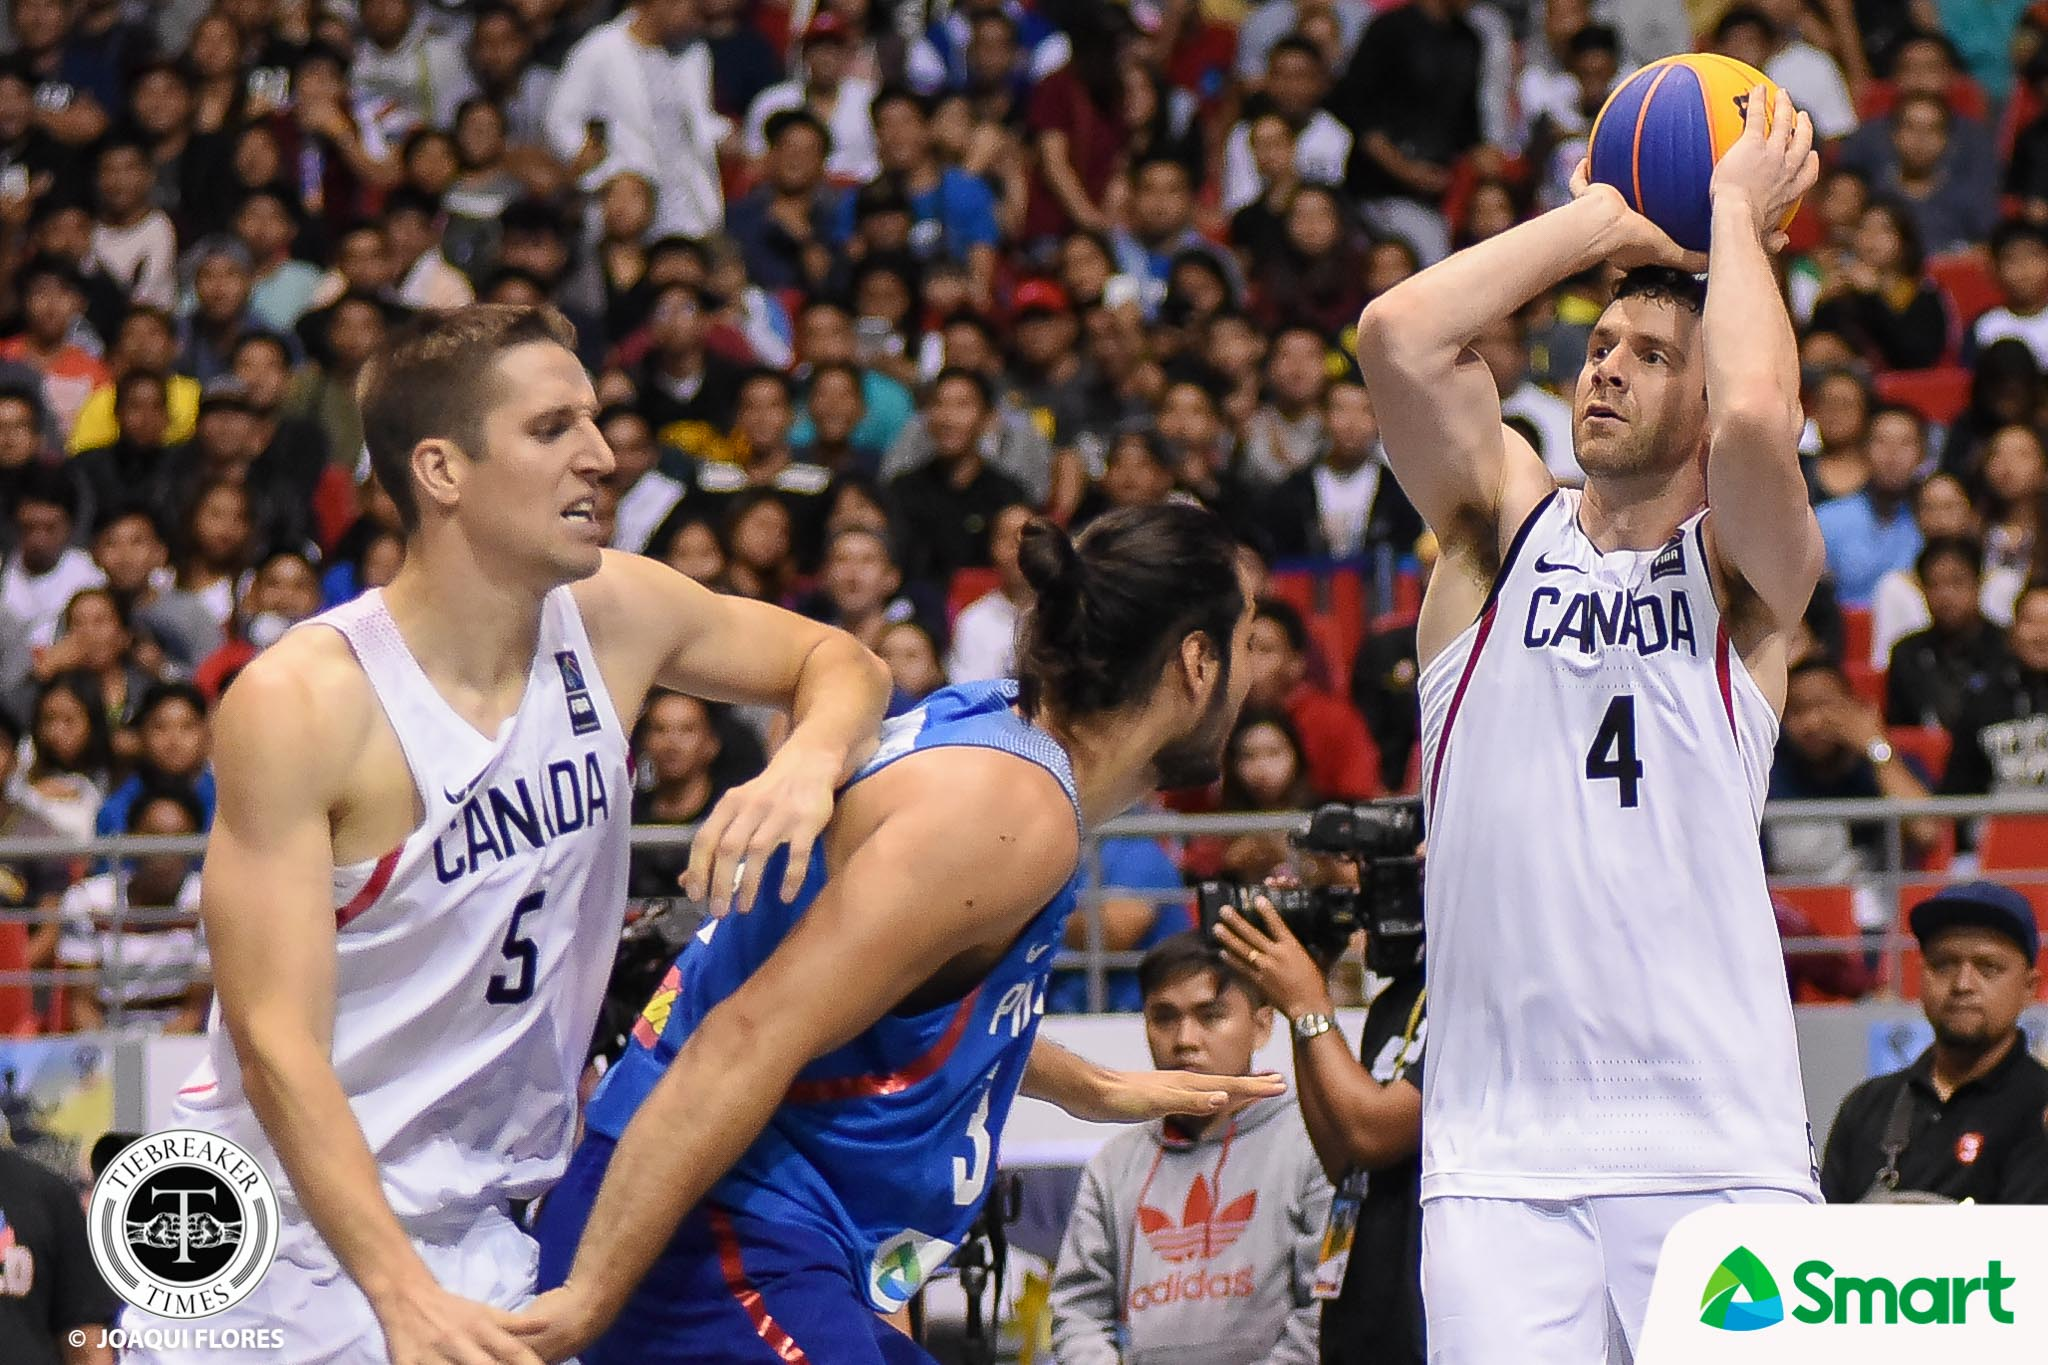 Tiebreaker Times NCAA all-time leader Steve Sir praises Roger Pogoy: 'You're one good shooter' 2018 FIBA 3X3 World Cup 3x3 Basketball Gilas Pilipinas News  Steve Sir Roger Pogoy Canada (Basketball) 2018 FIBA 3X3 World Cup - Men's